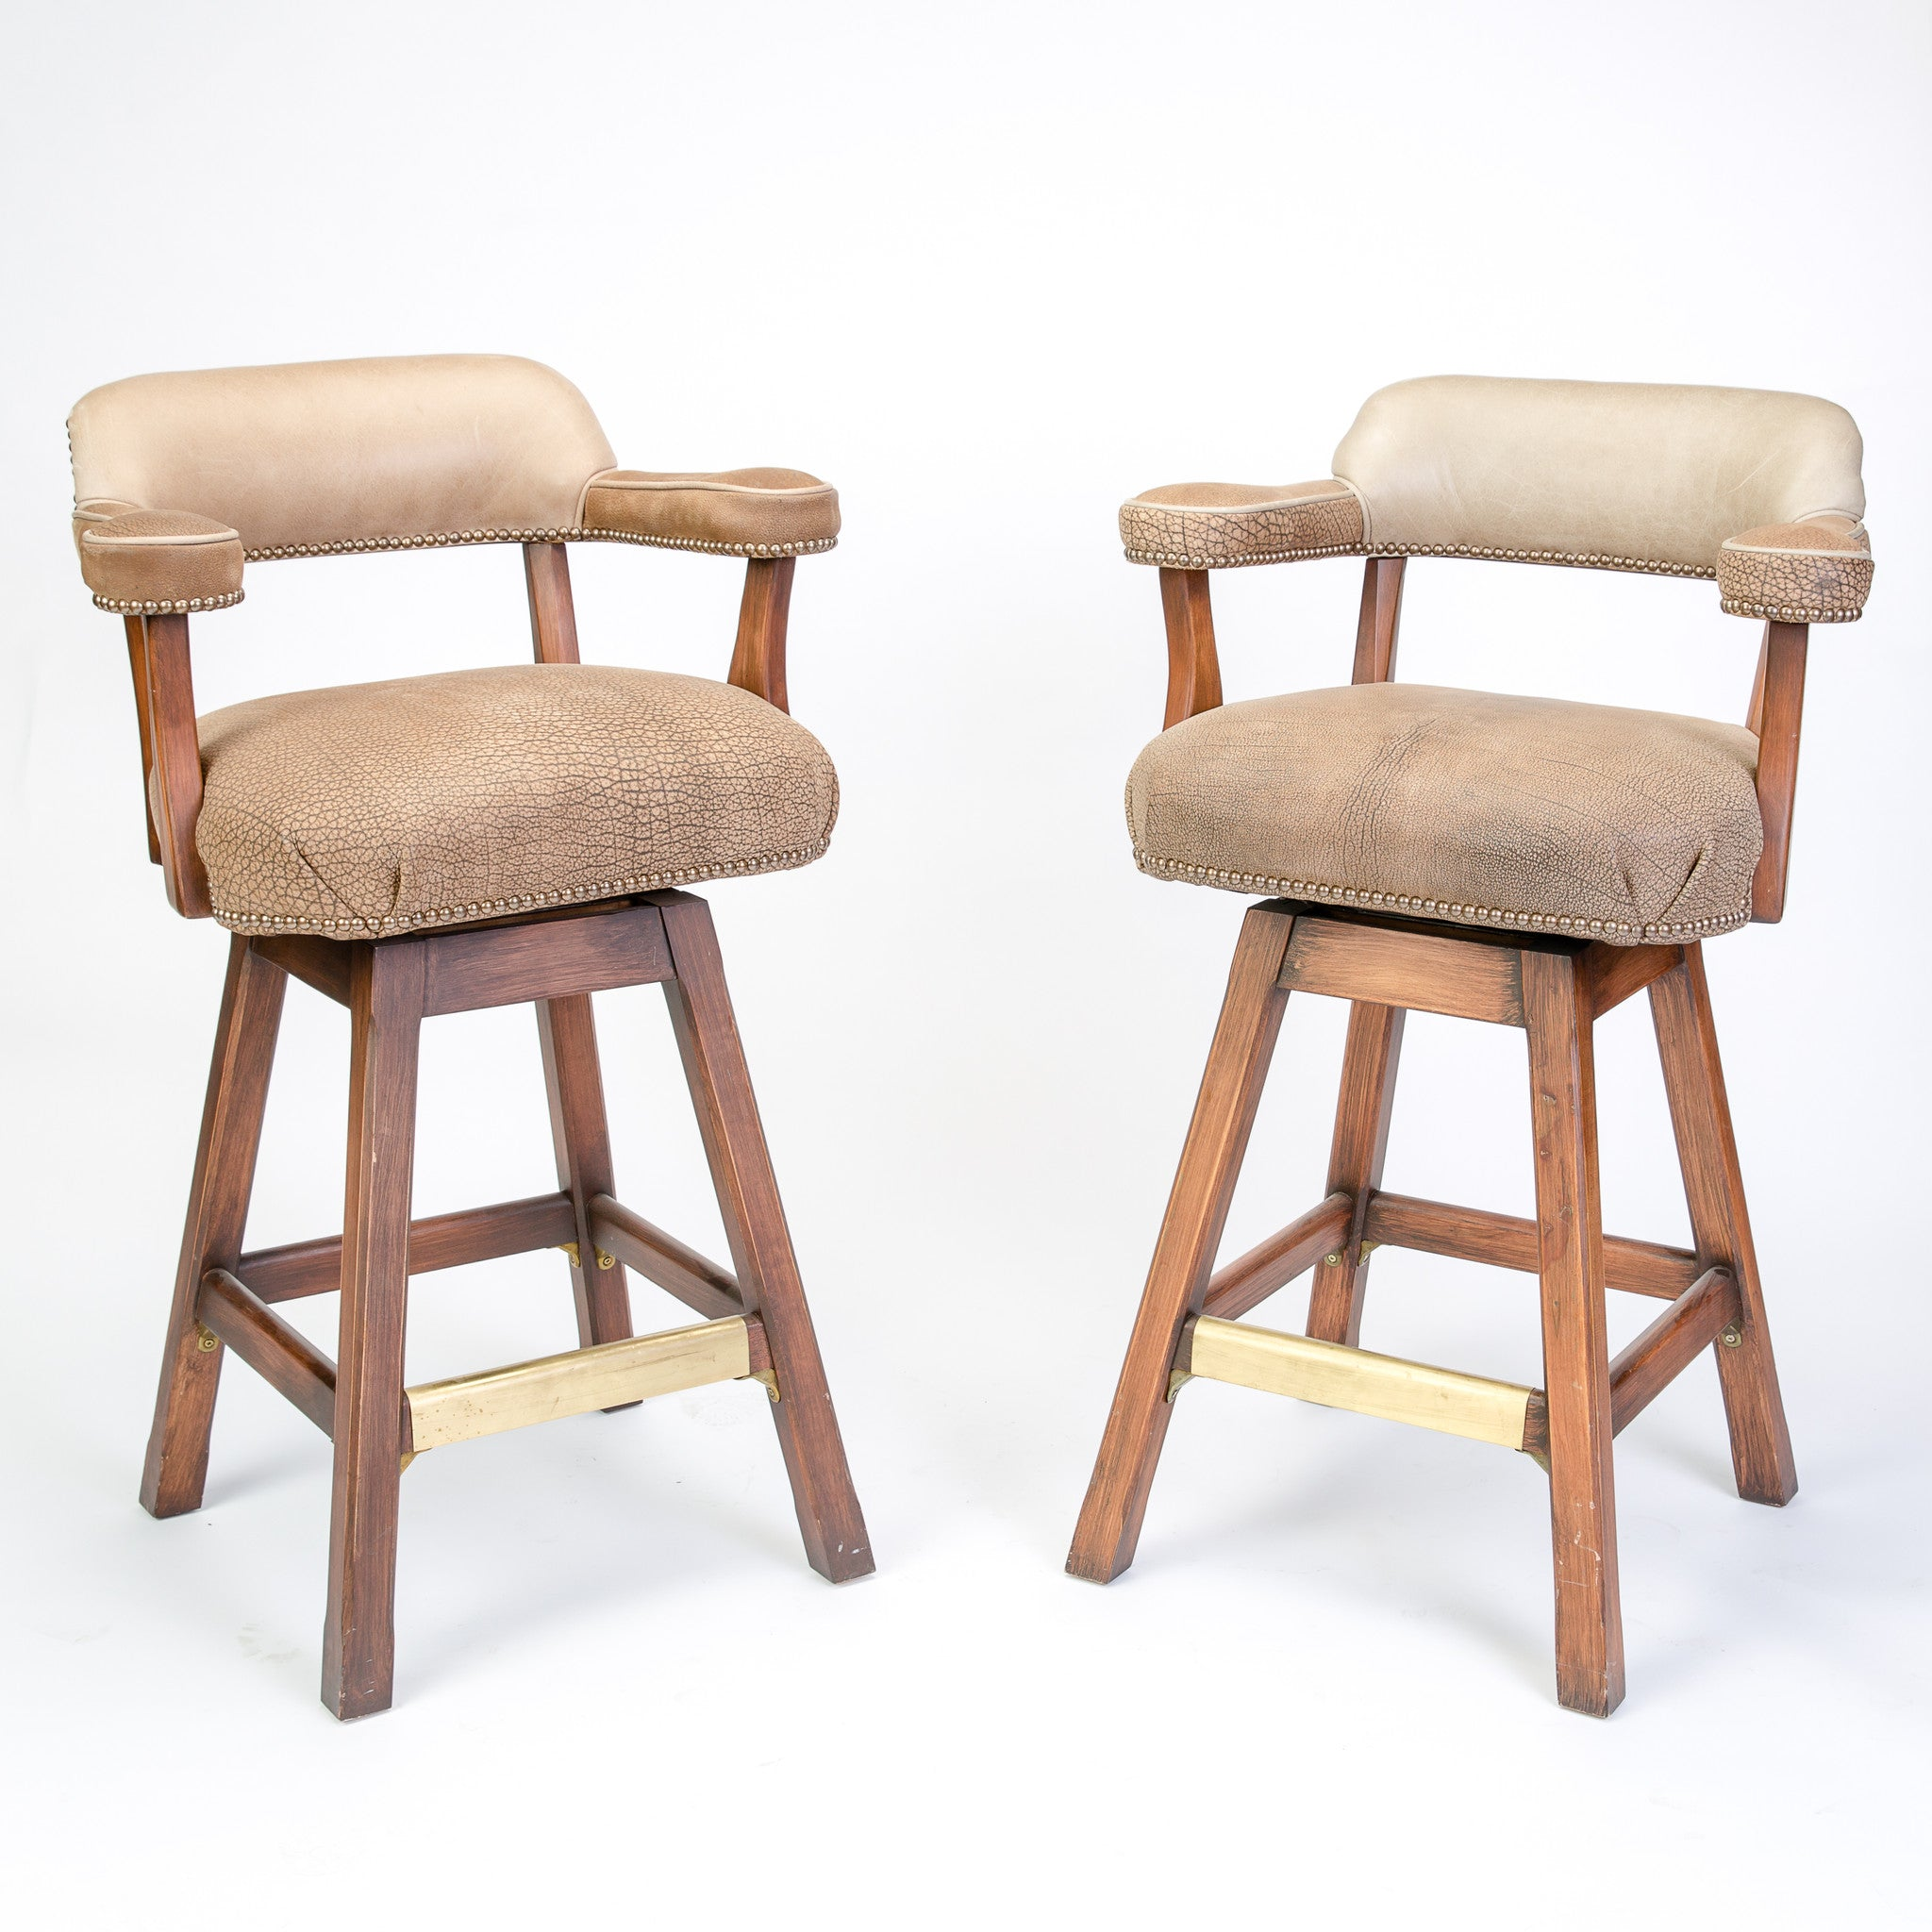 Pair of Swivel Peau Textured Stools With Cowhide Back